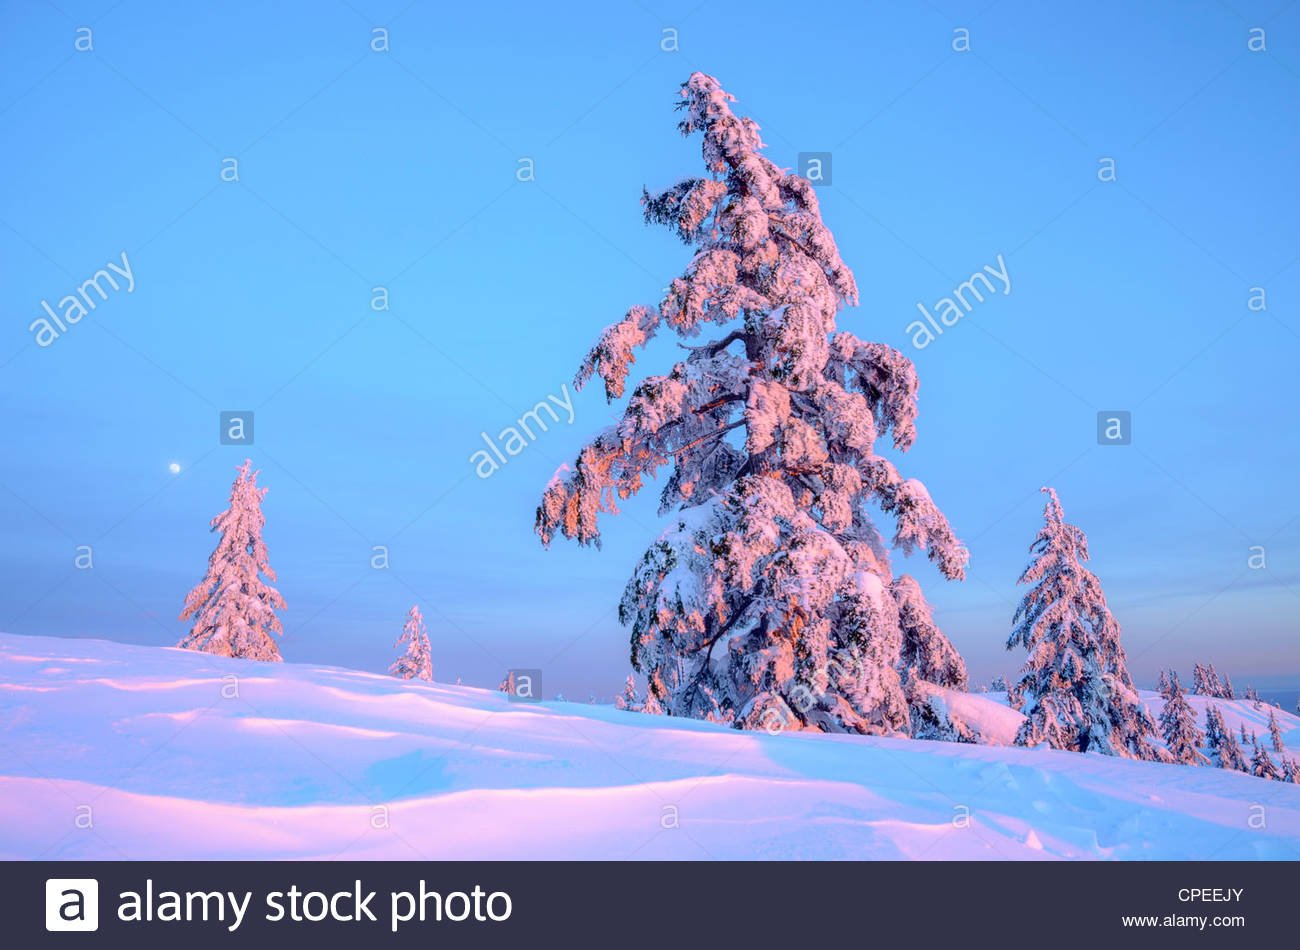 Snow clad trees, Winter, Mount Seymour Provincial Park, North Vancouver, British Columbia, Canada - Stock Image